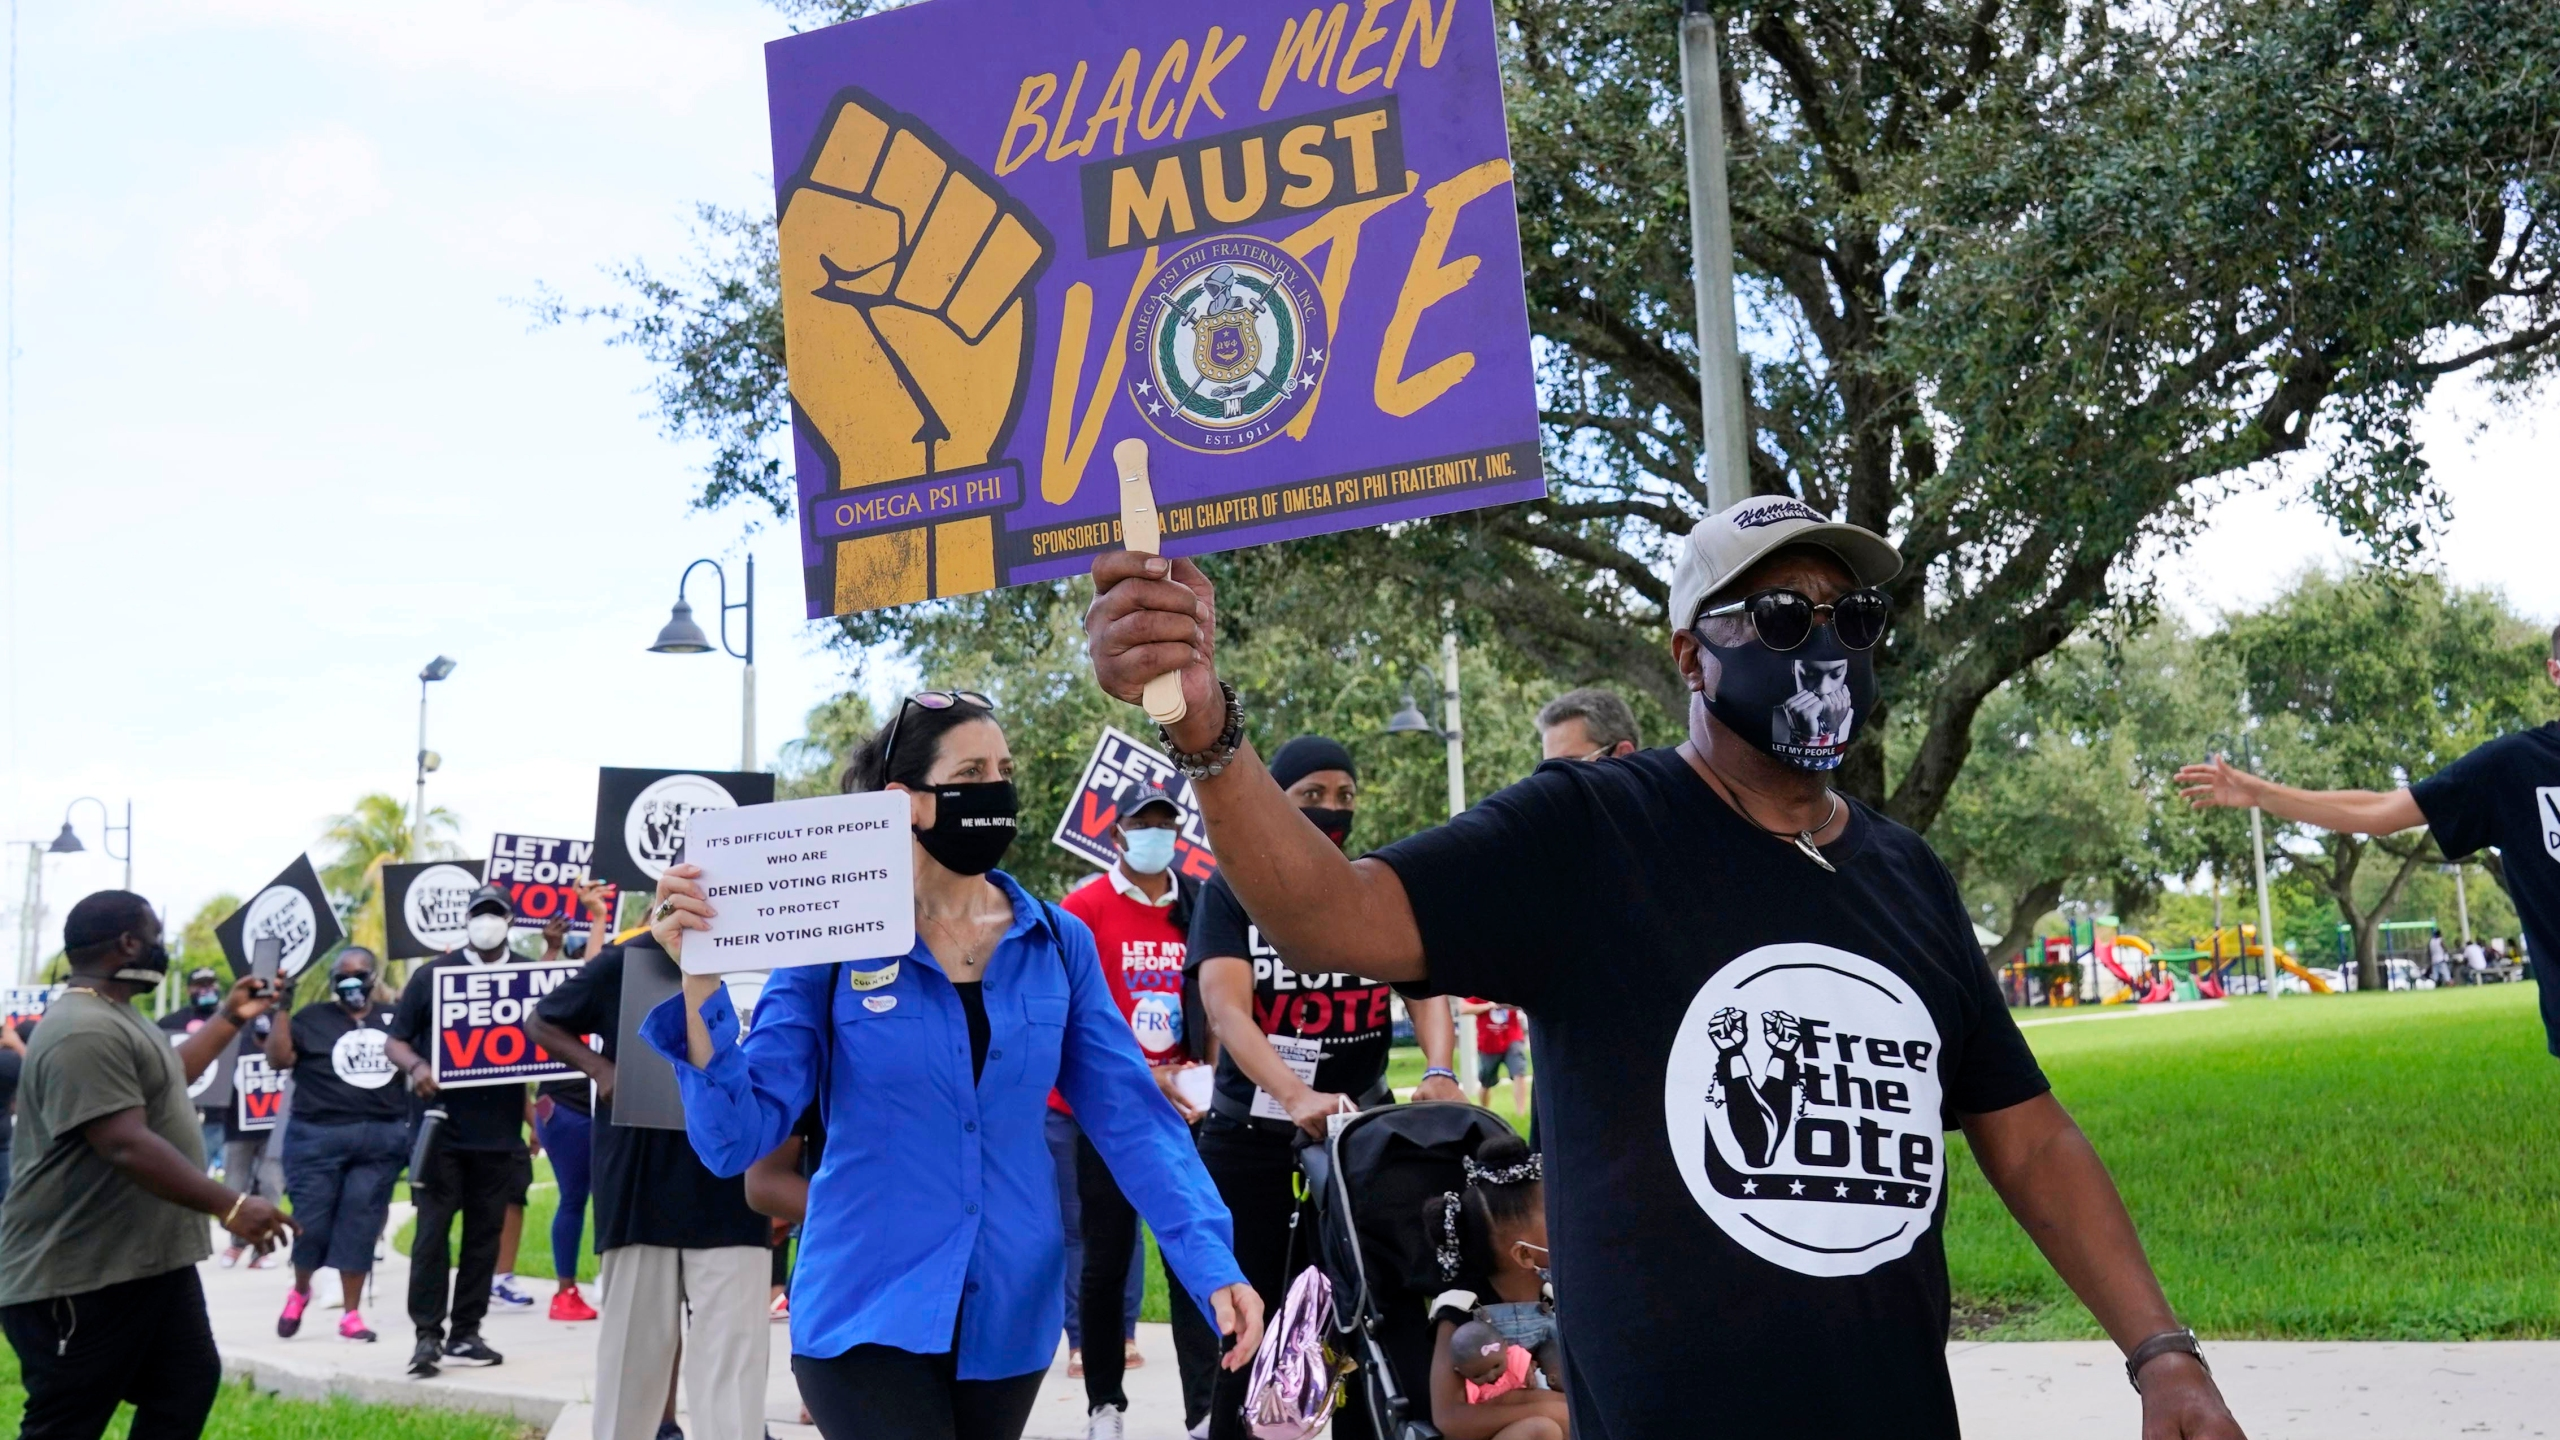 Supporters of restoring Florida felons' voting rights march to an early voting precinct, Saturday, Oct. 24, 2020, in Fort Lauderdale, Fla. (AP Photo/Marta Lavandier)